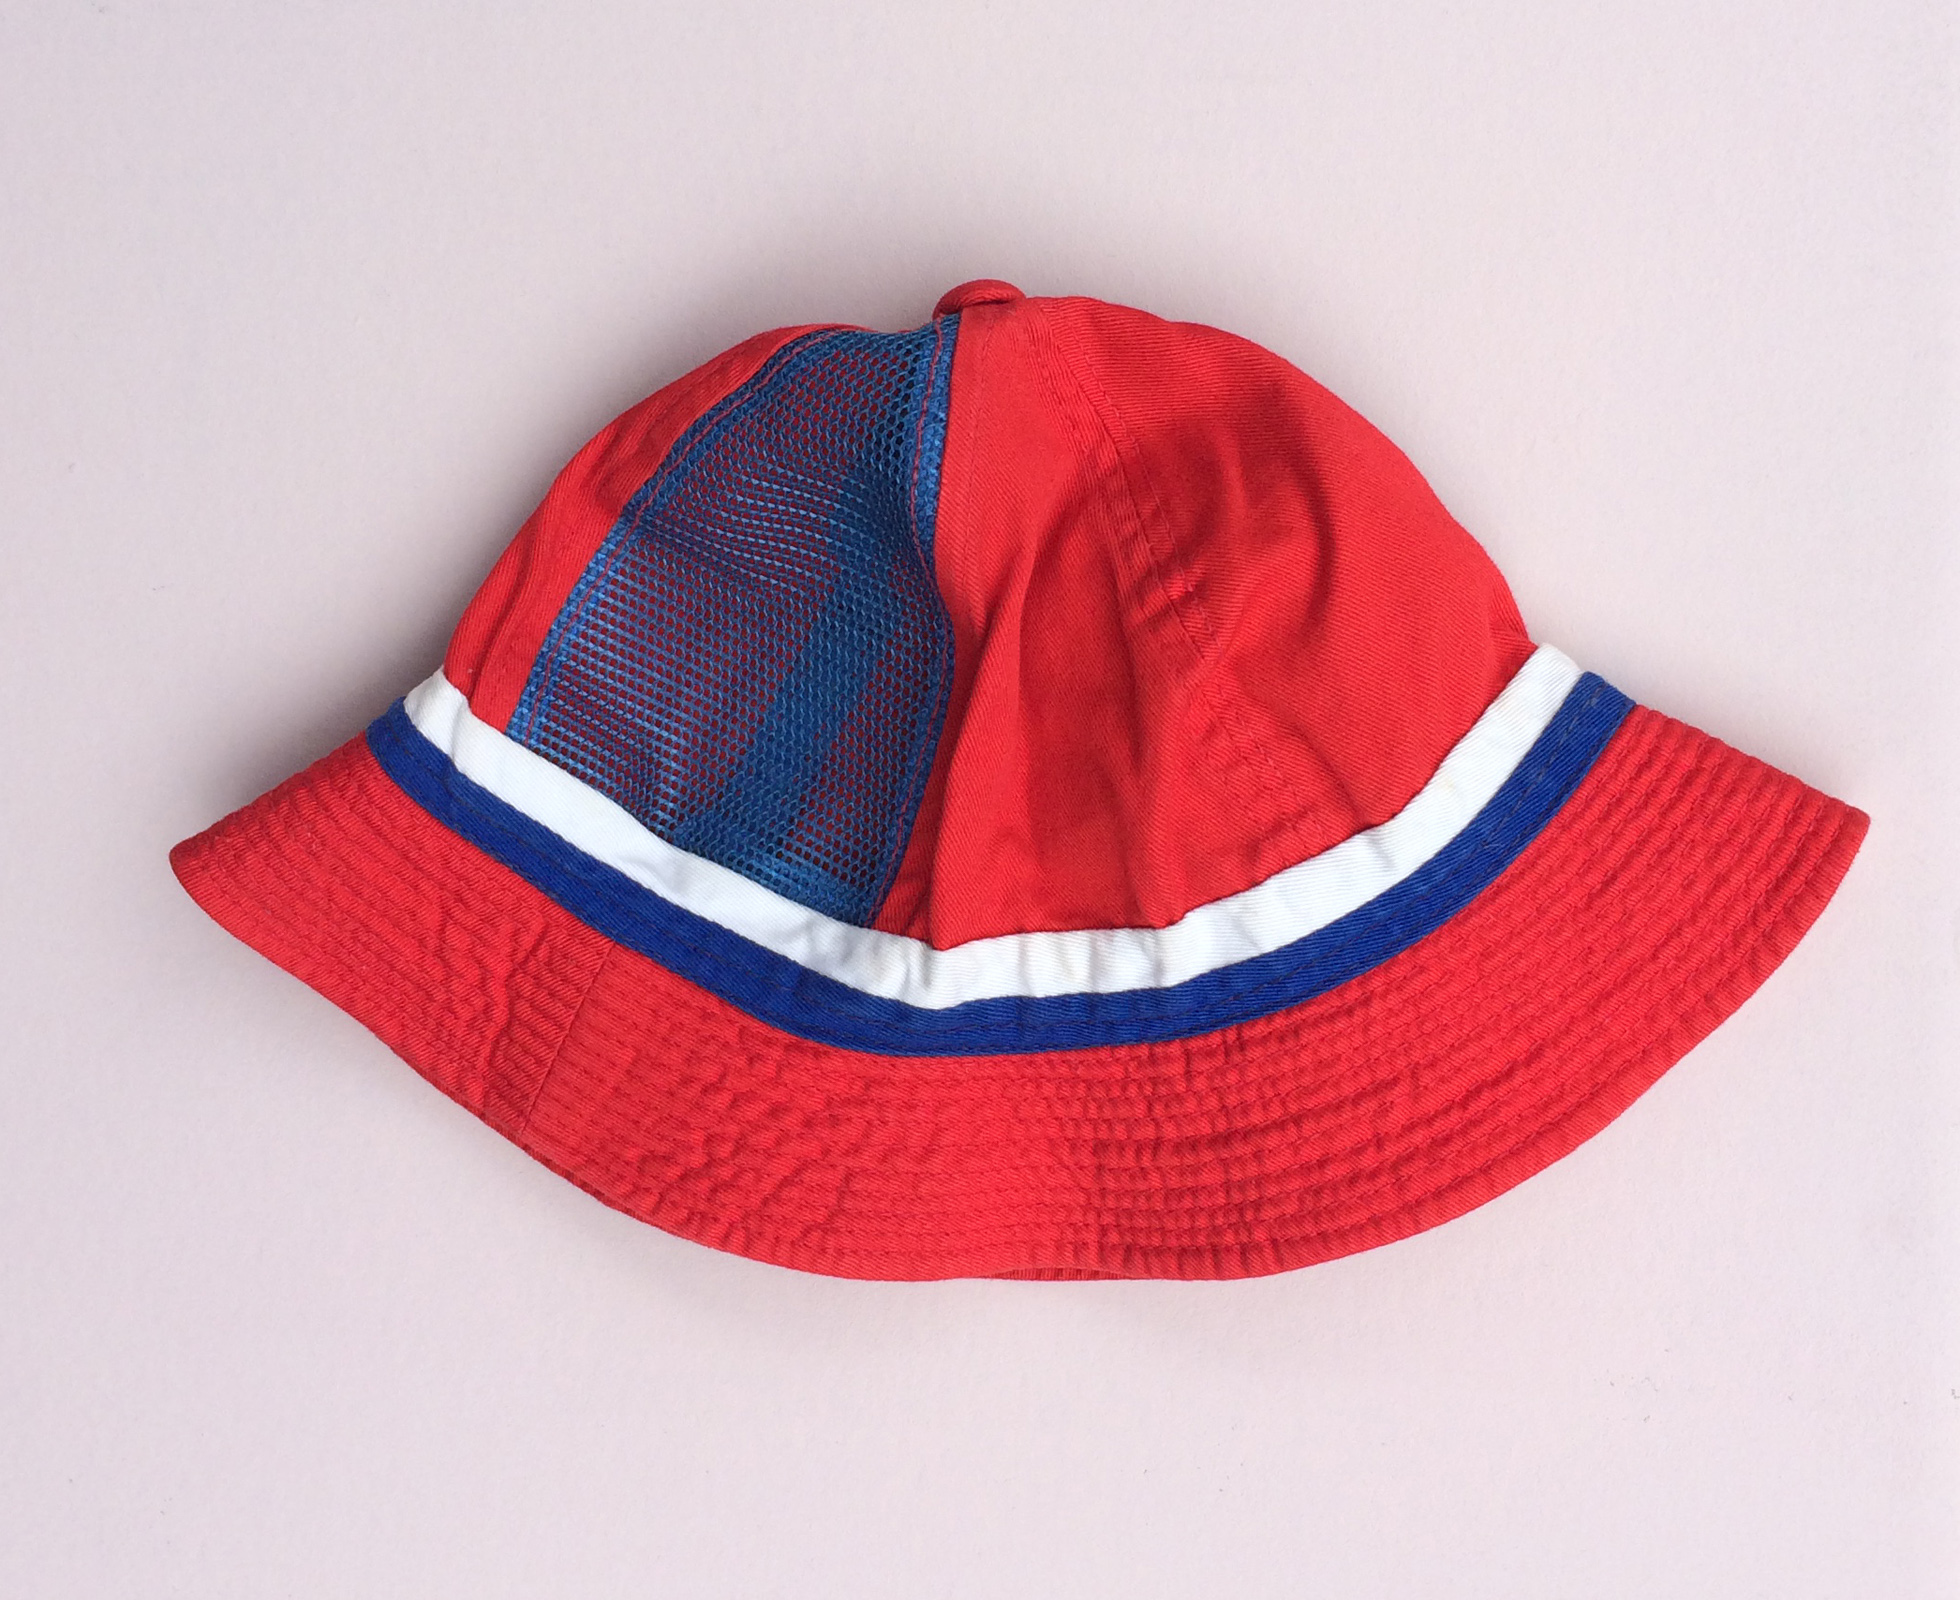 Vintage Bucket Hat size 3-5 years old - PLAY kids clothes e09cf2e0106